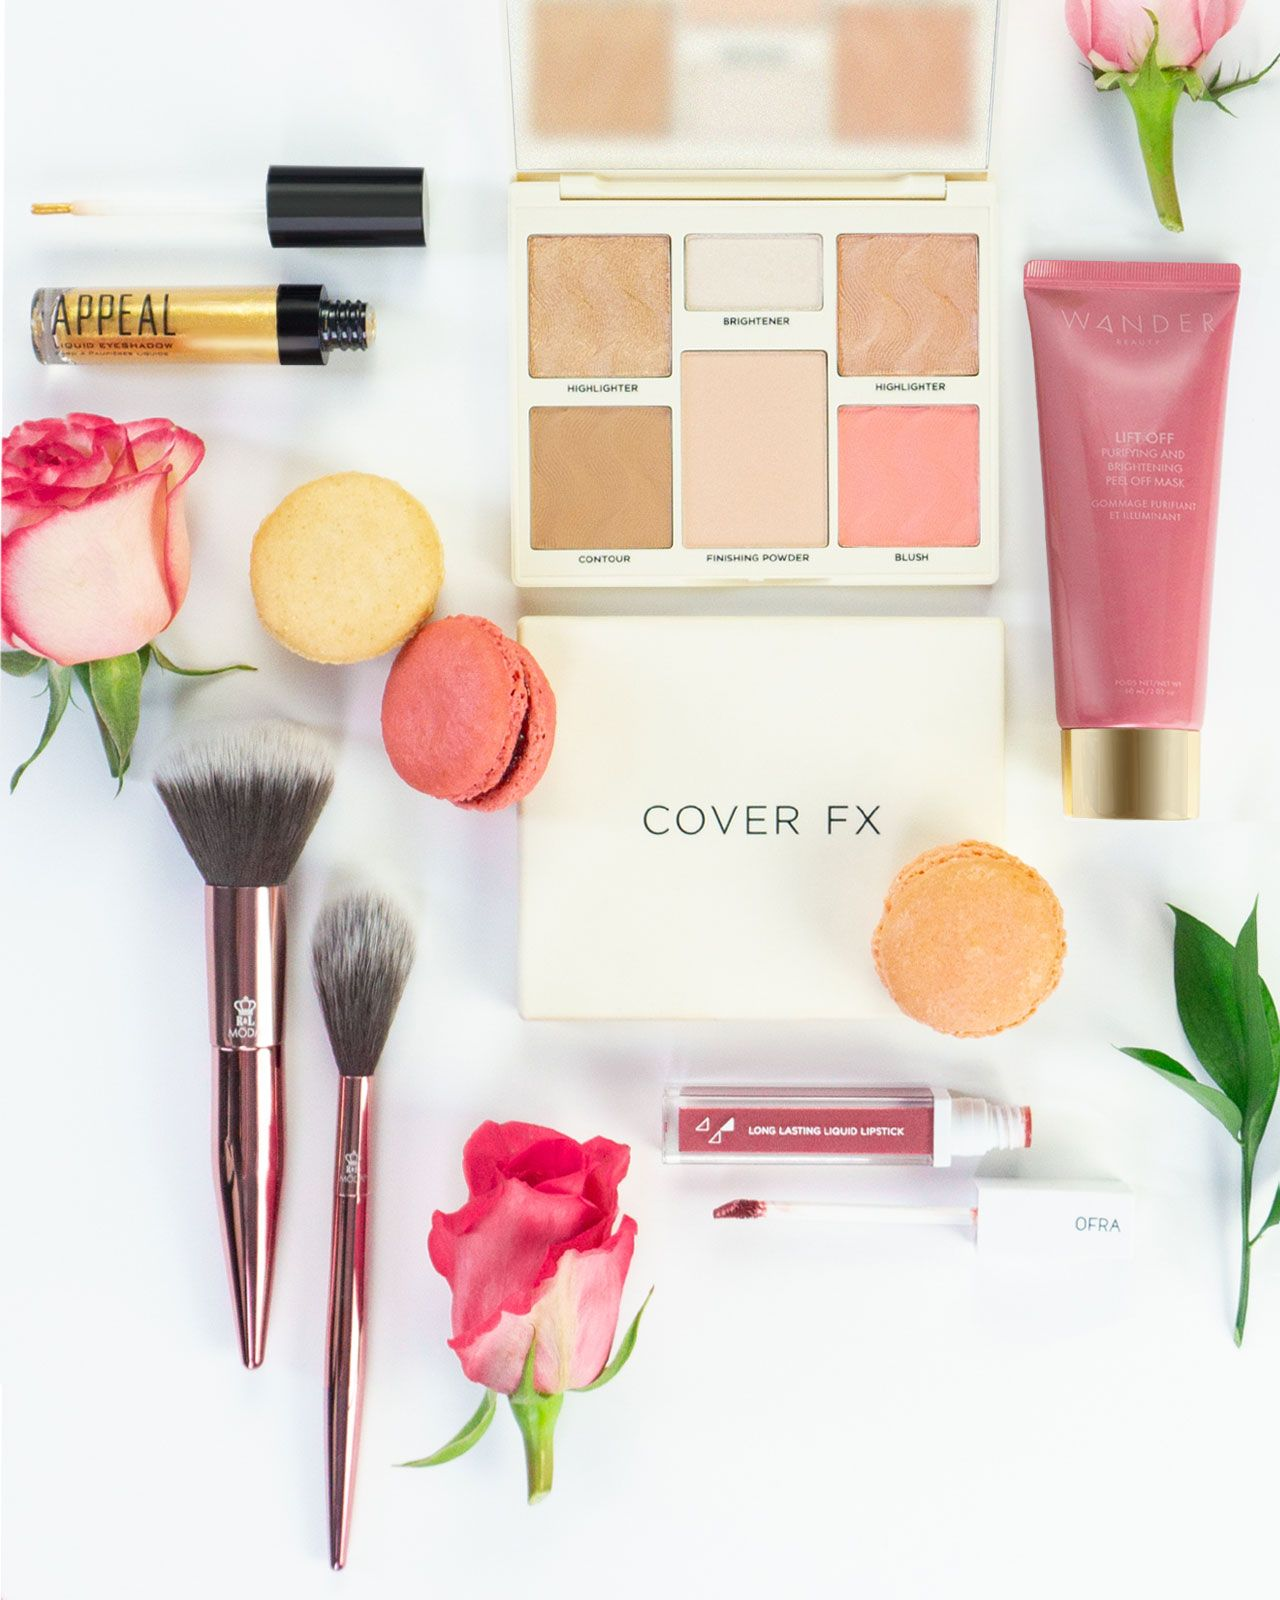 Cover FX Face Perfector Palette, Appeal Cosmetics Liquid